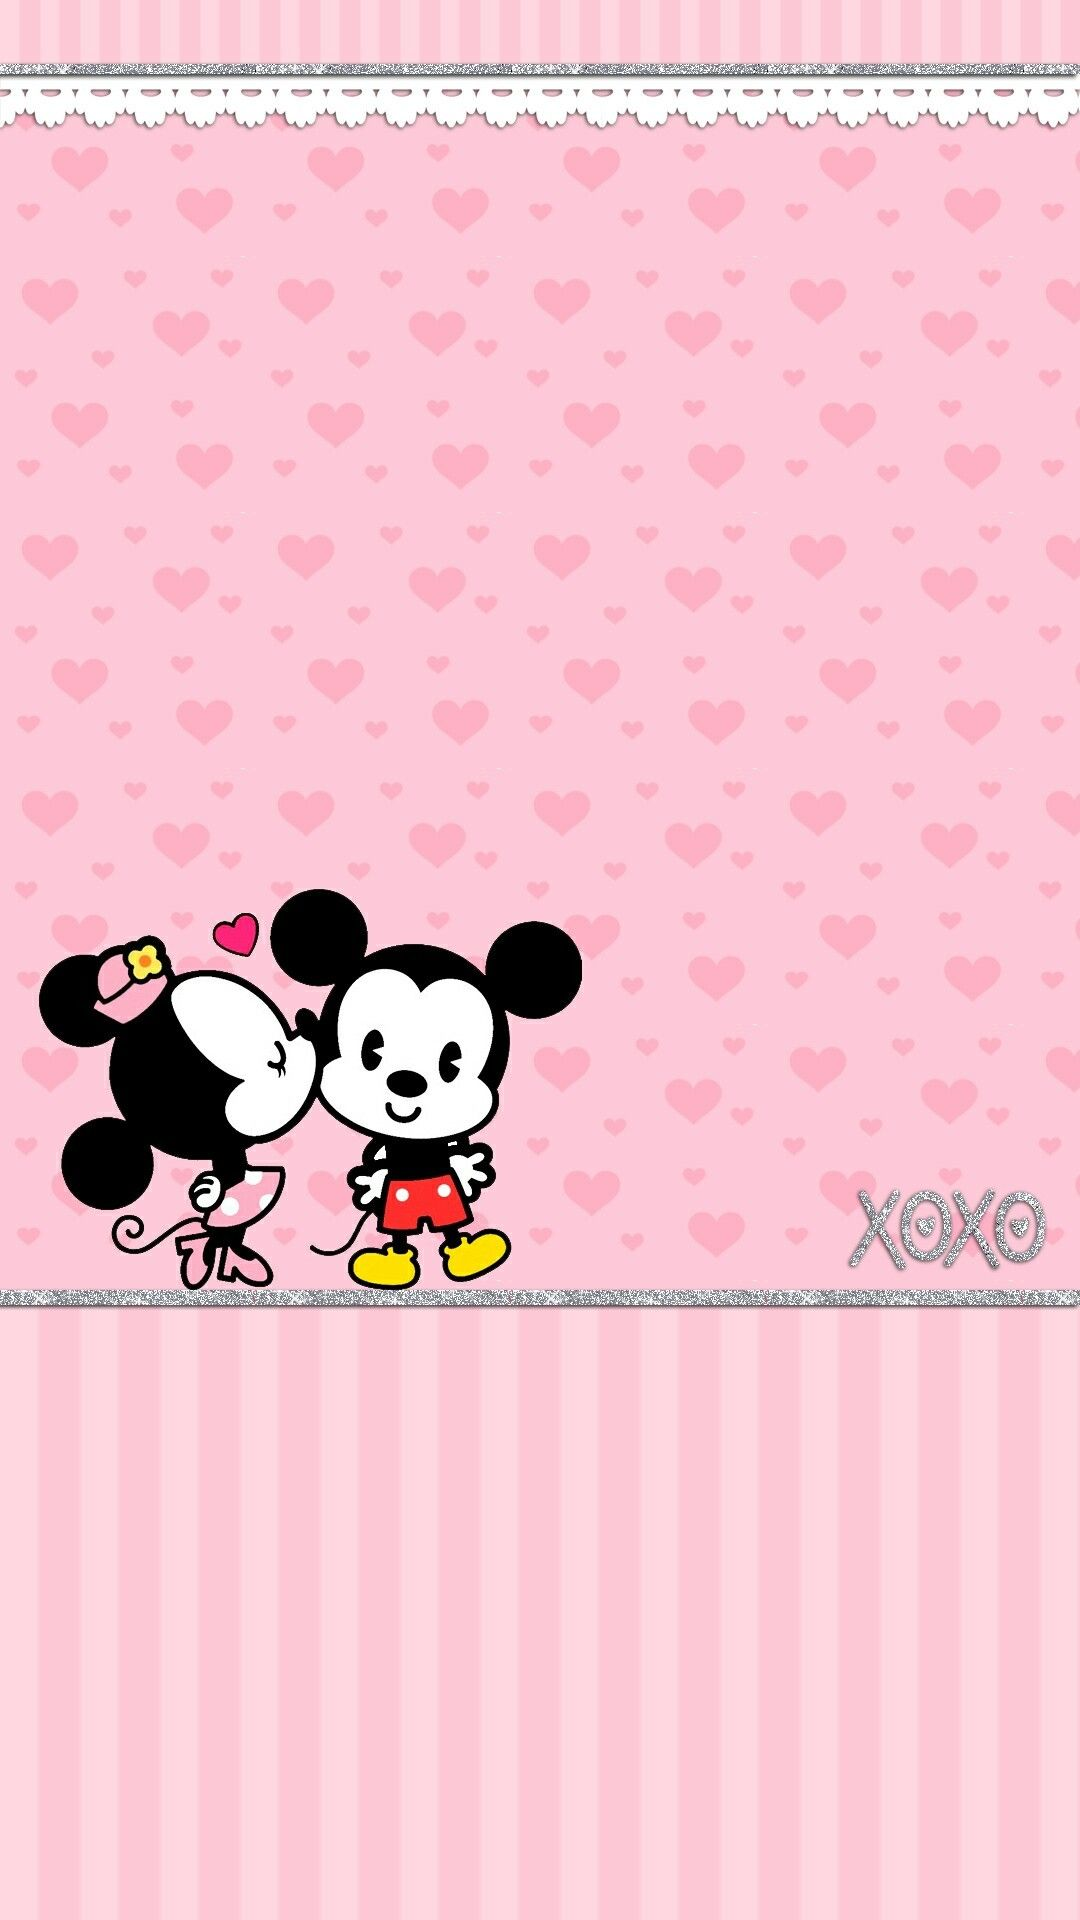 Polka Dot Minnie Mouse Wallpaper Android Download in 2020